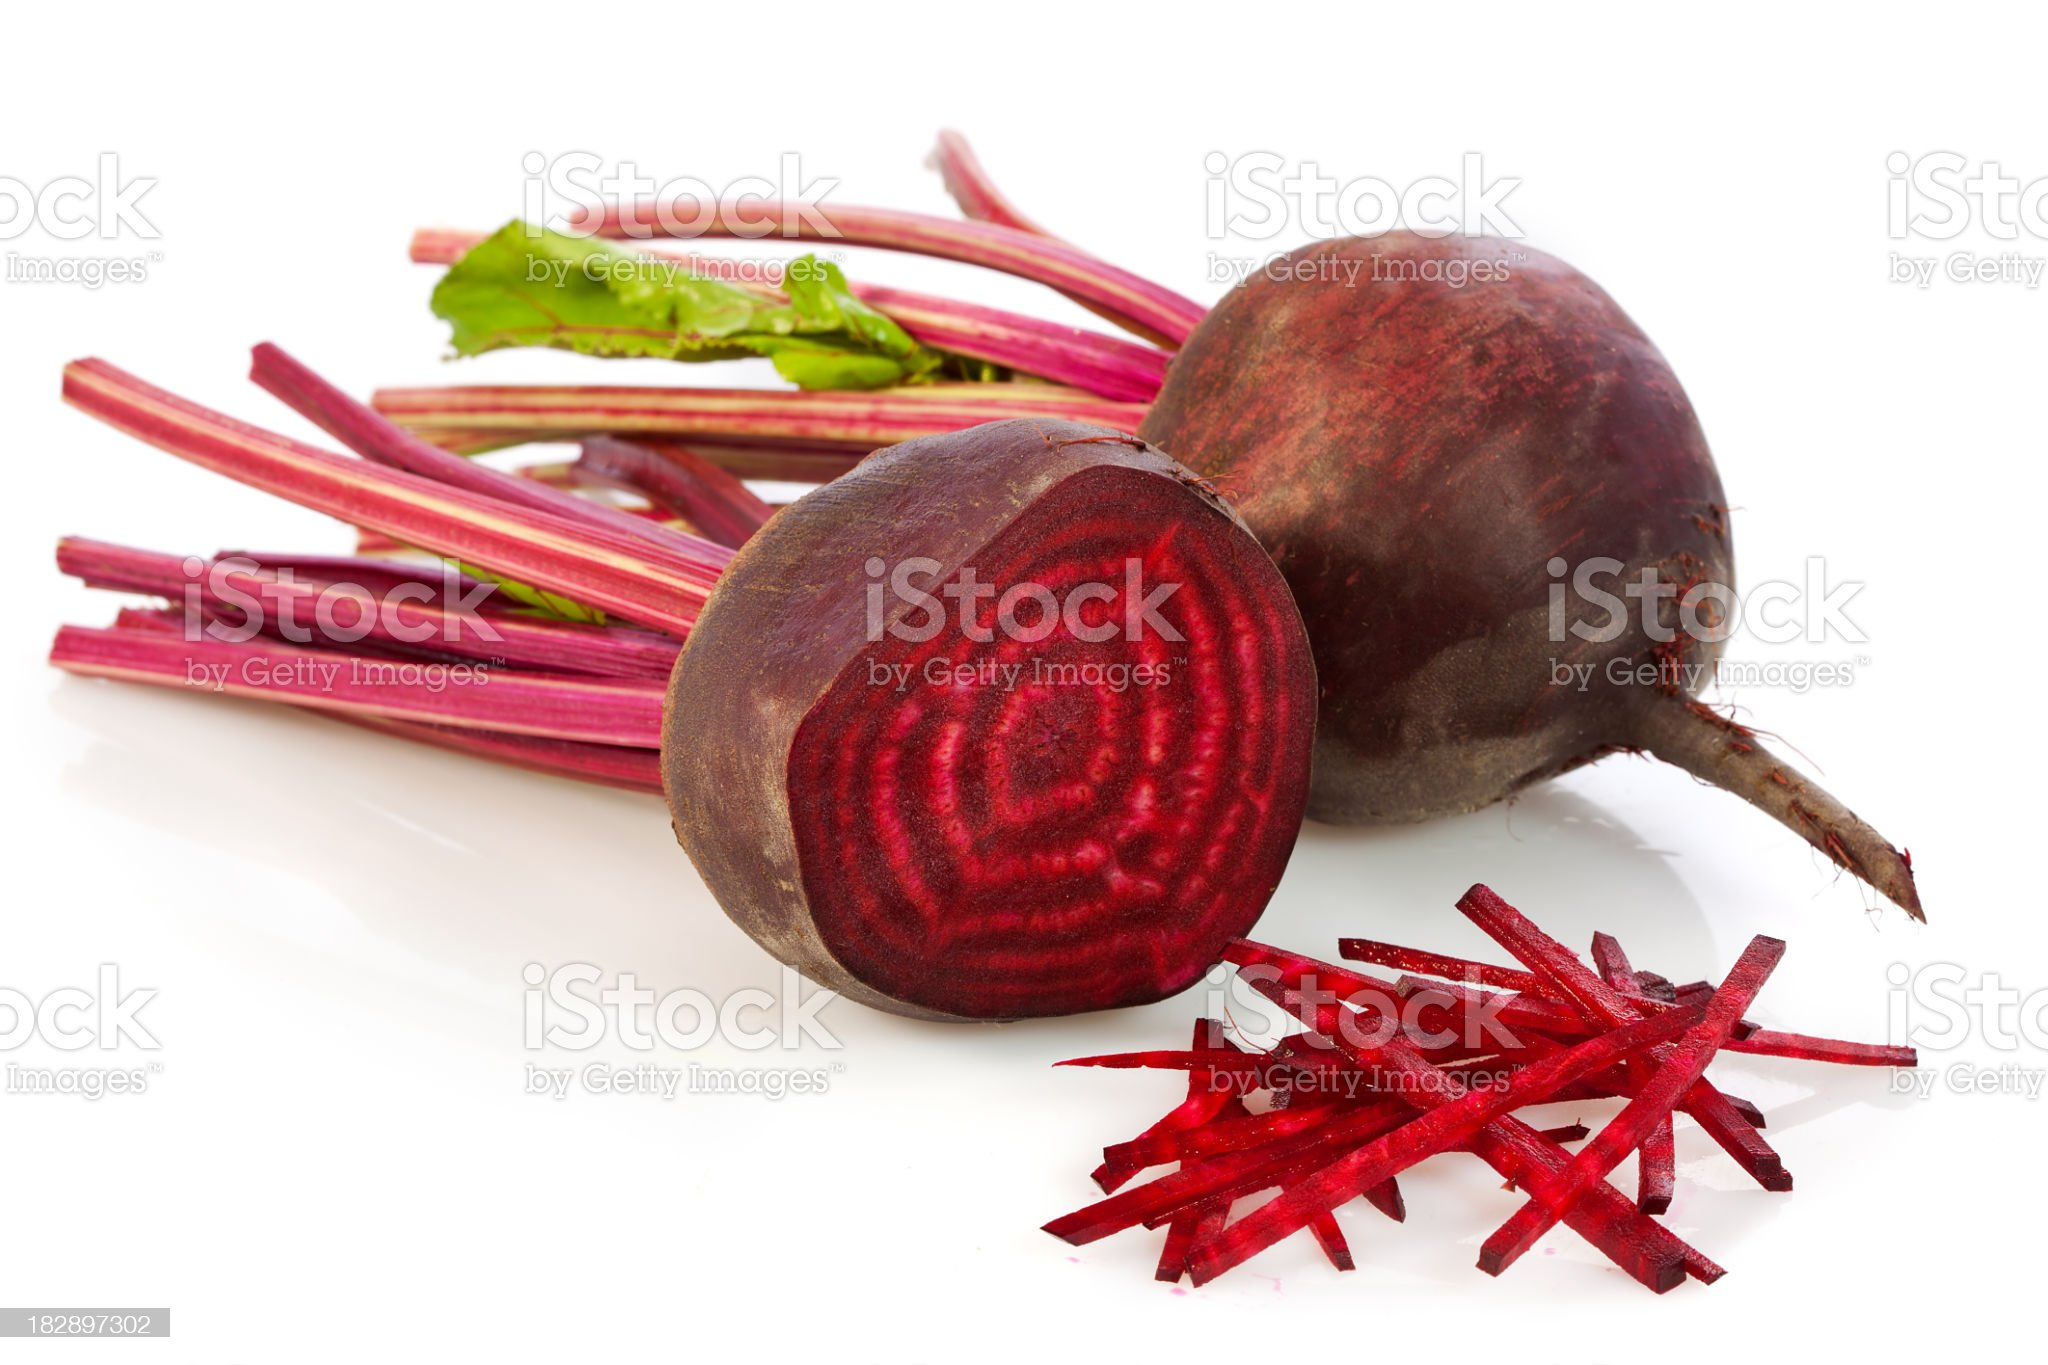 Beetroots royalty-free stock photo